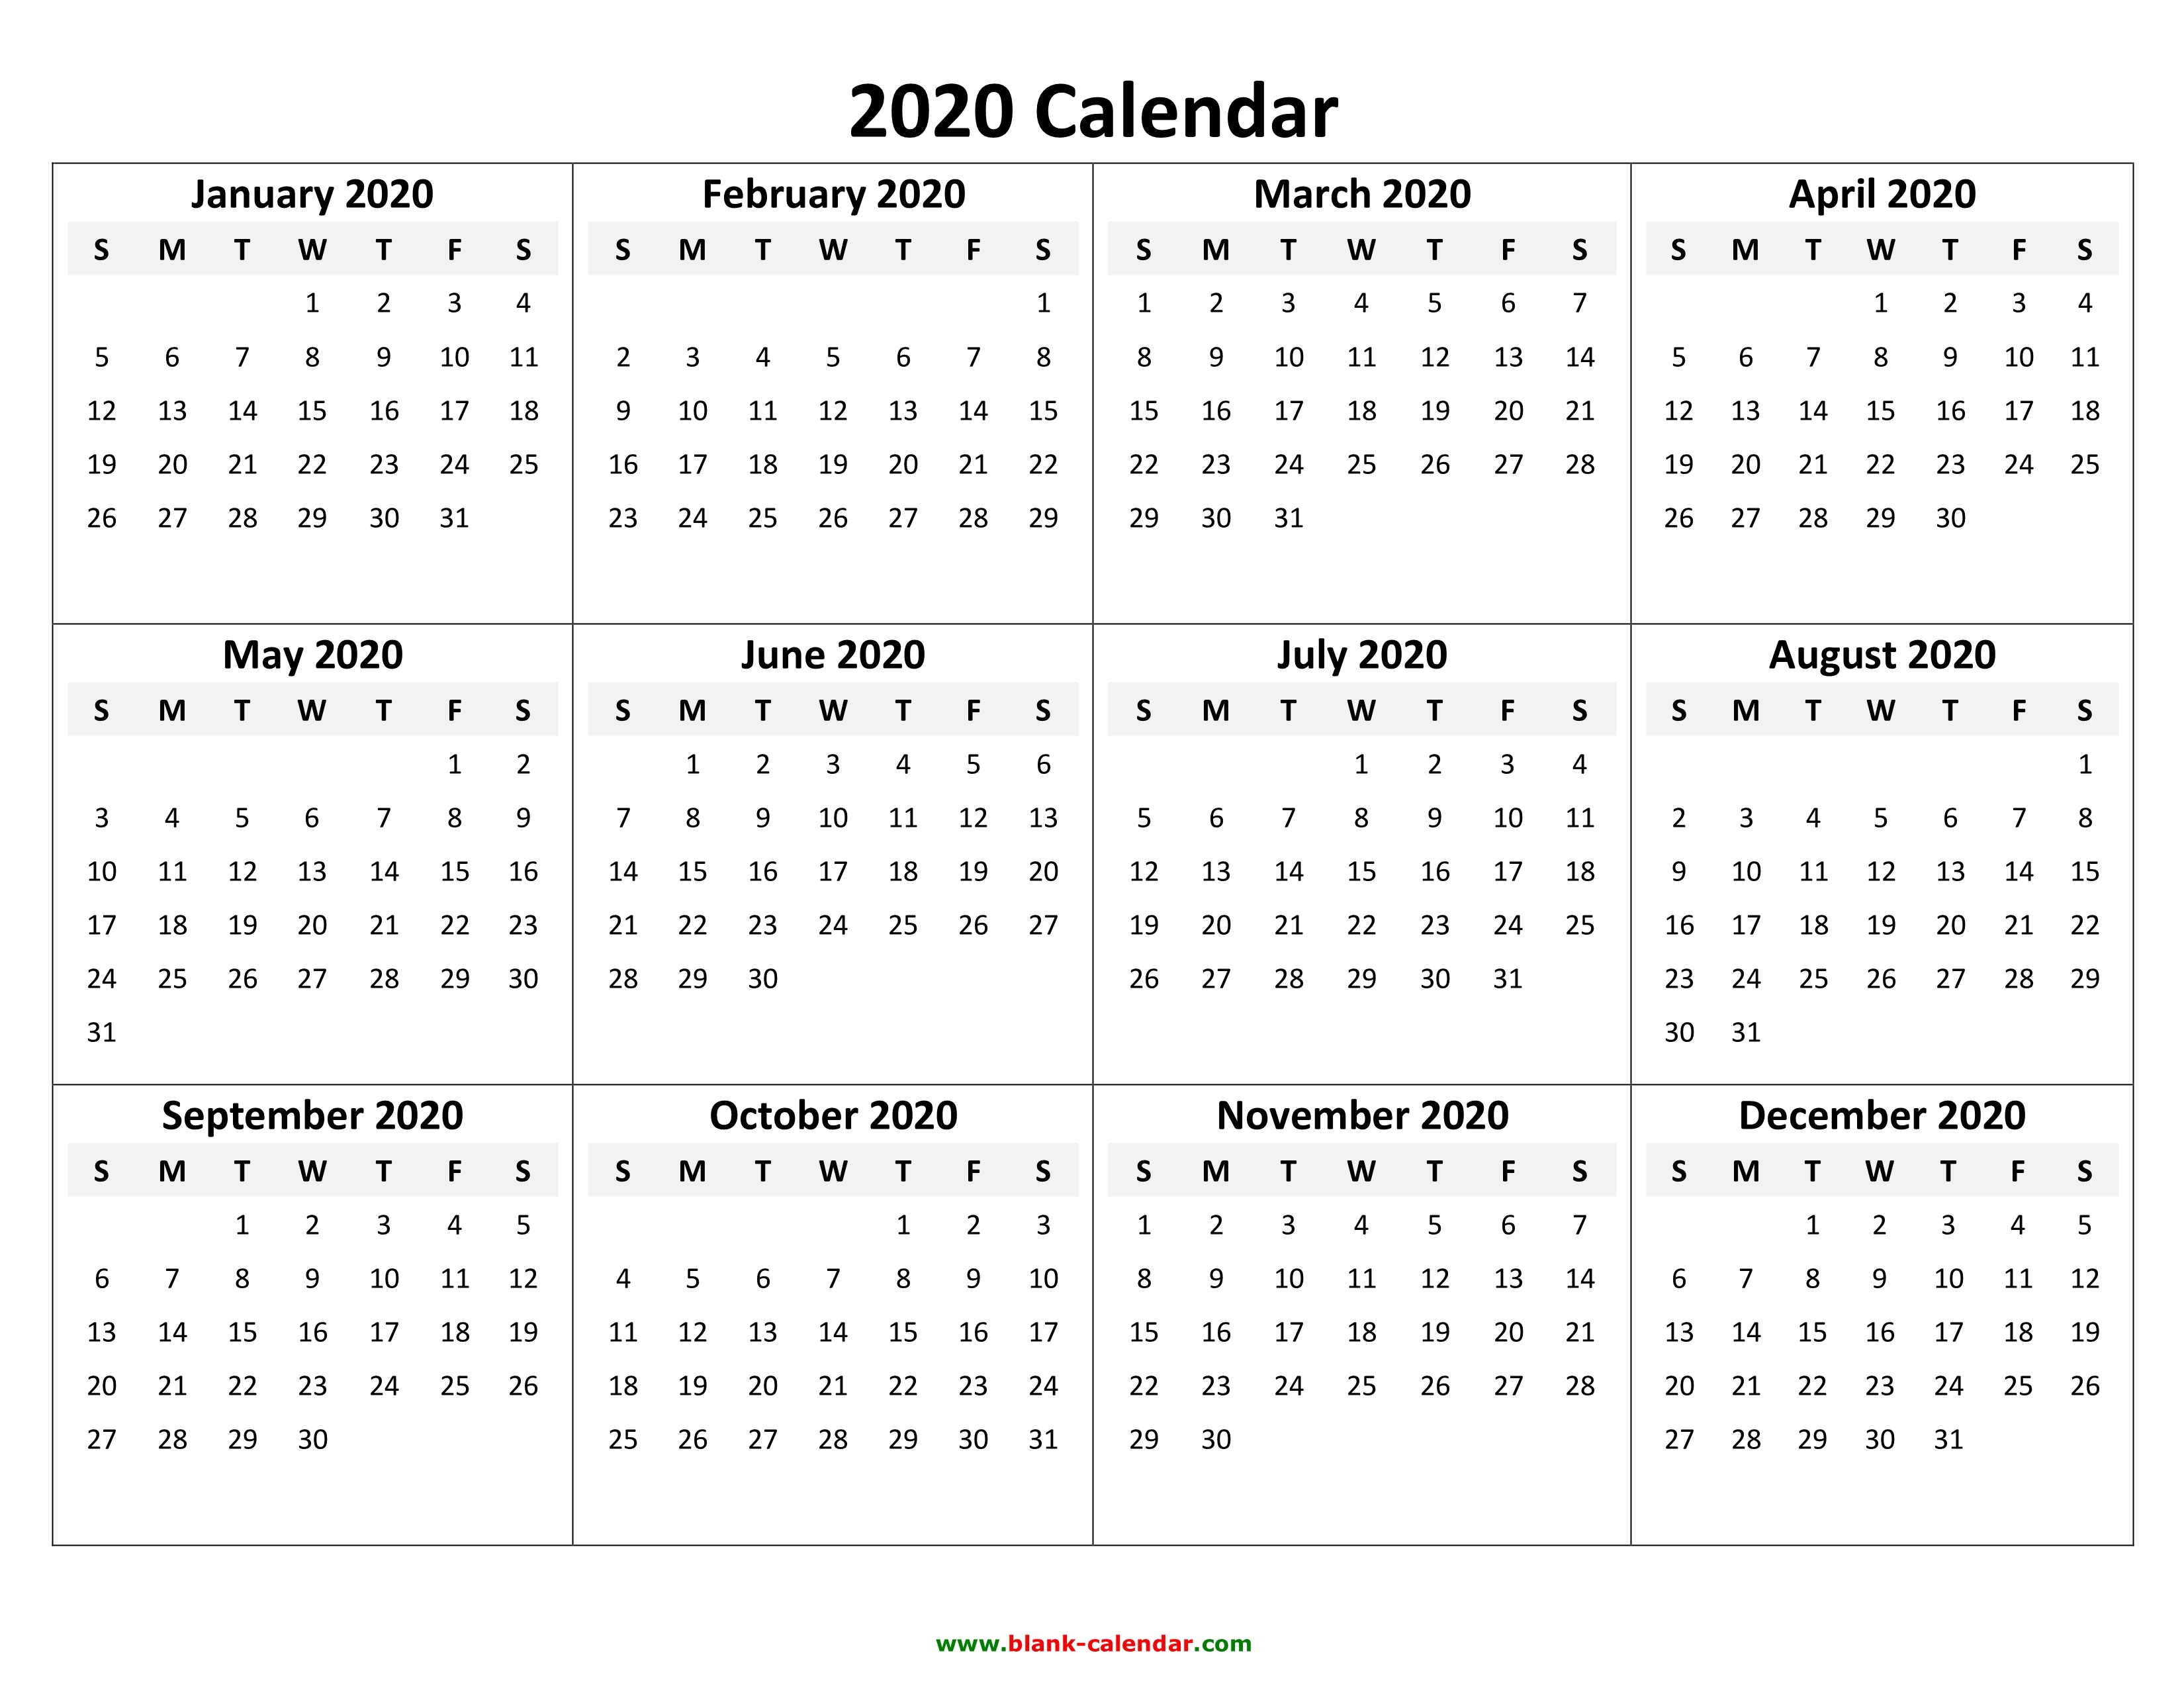 2020 2020 Calendar Printable | Isacl with regard to Printable 2020 Calendars No Download